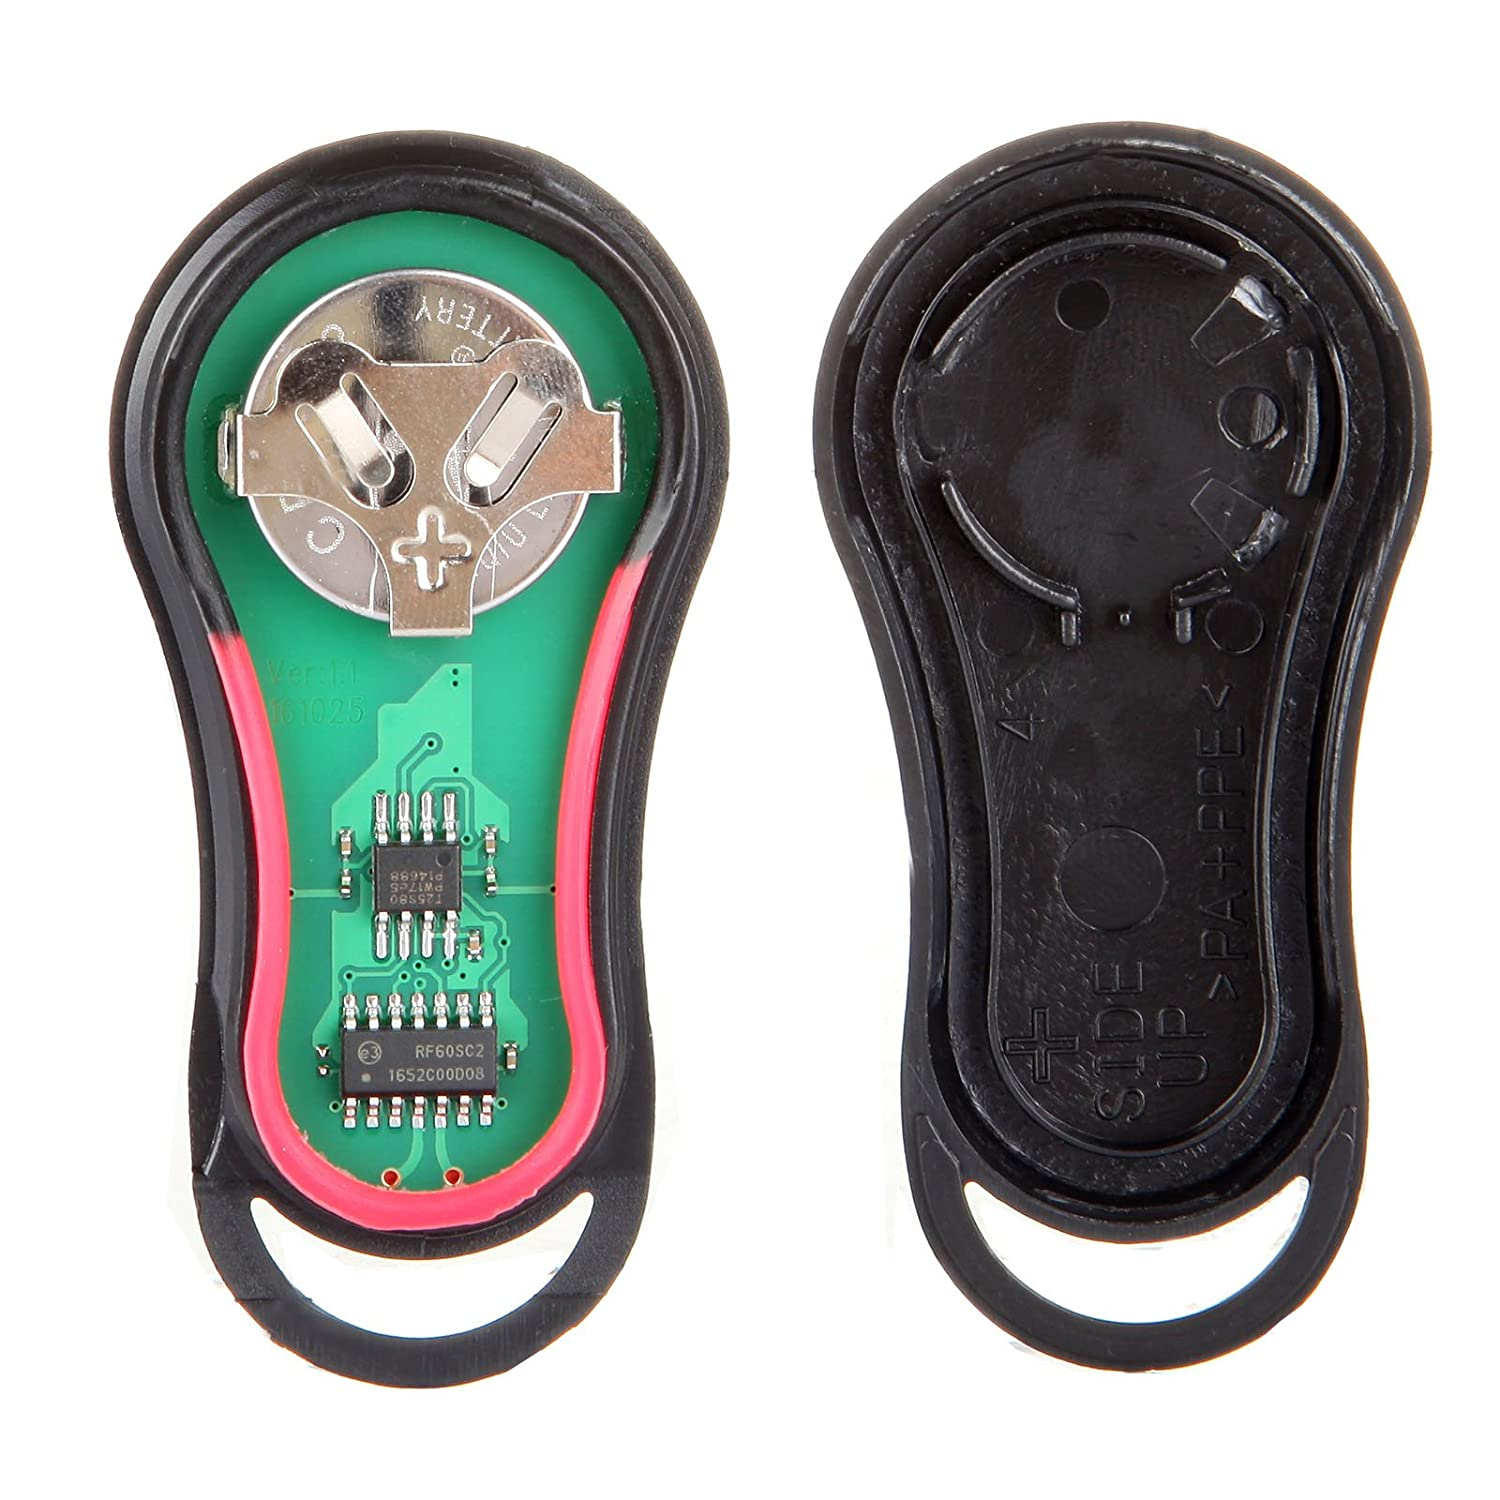 SCITOO Compatible fit for 1X Keyless Entry Remote Car Key Fob 3 Buttons Replacement Plymouth Dodge Chrysler Series GQ43VT17T 057210-5206-1834349961